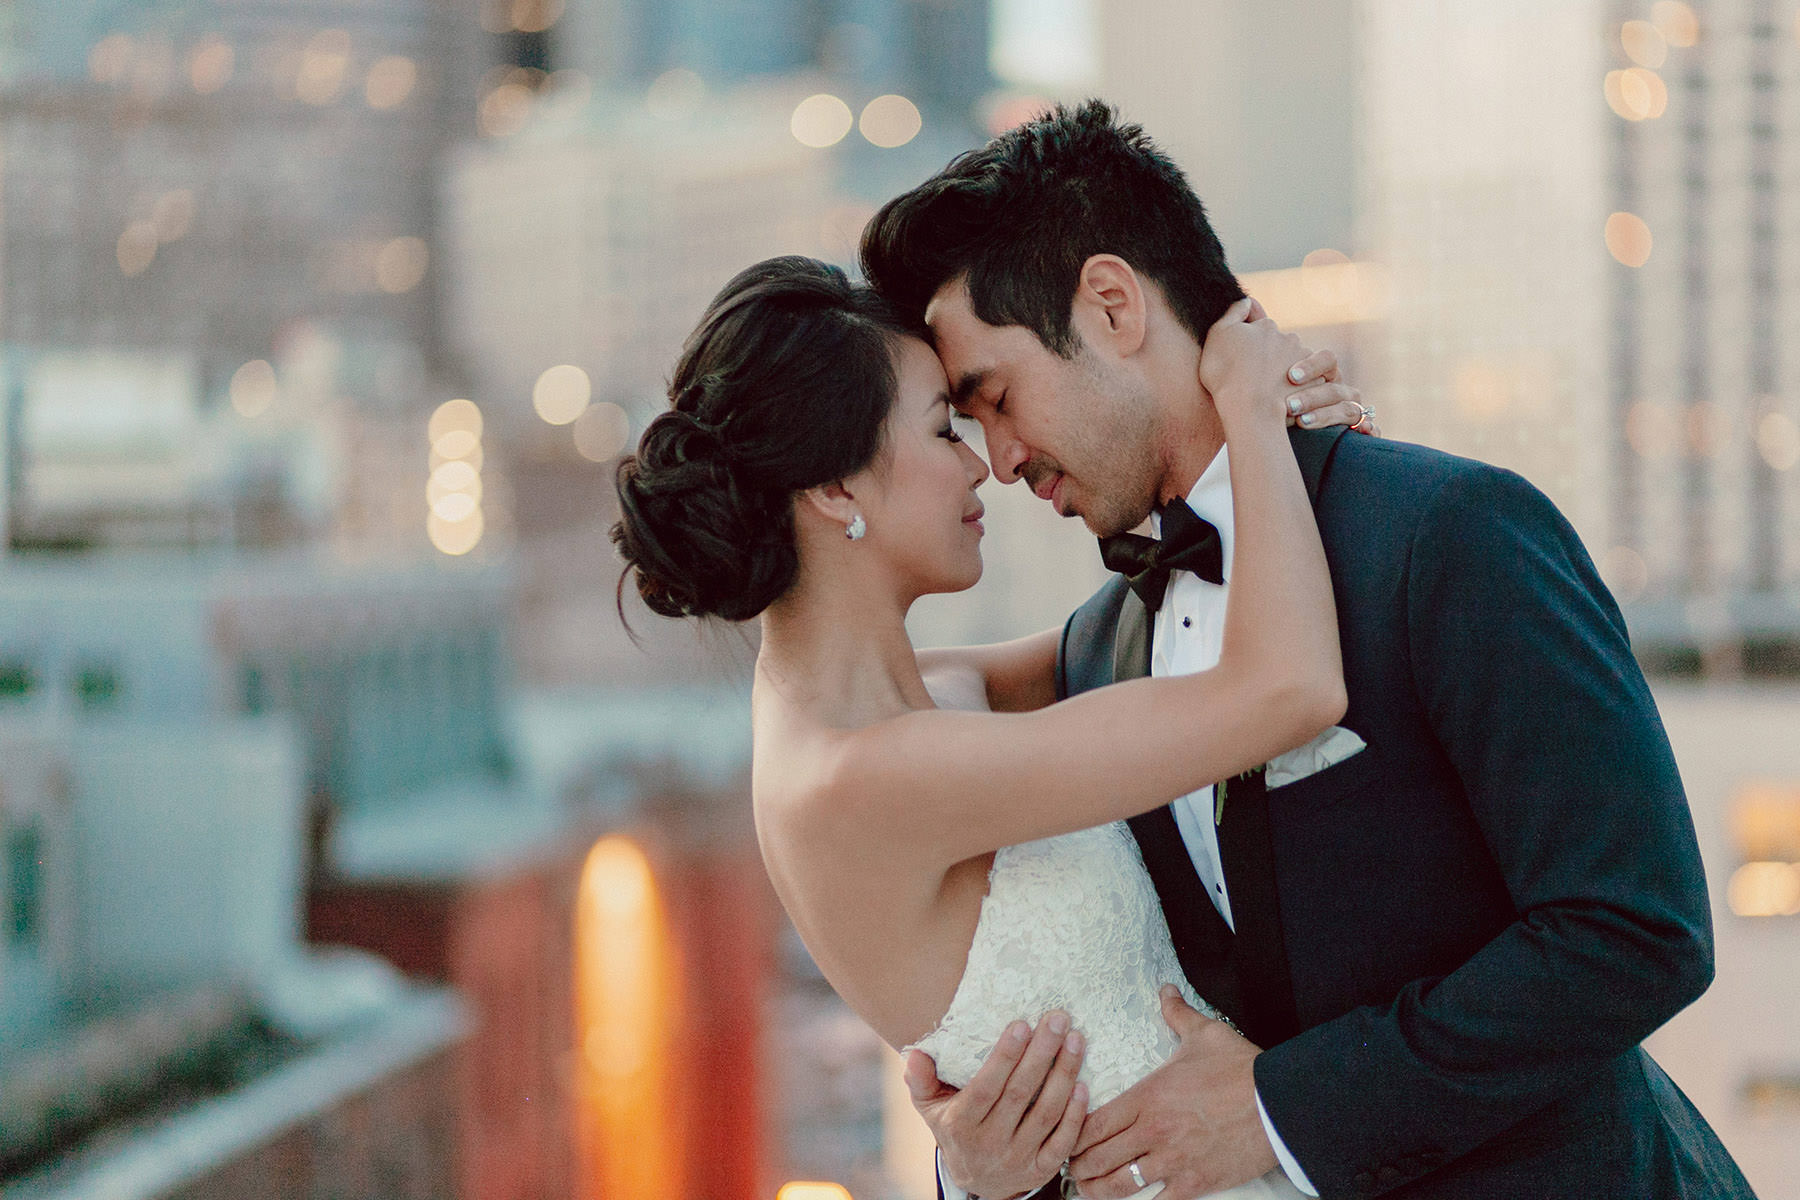 A wedding couple that stands on a rooftop and holds each other closely.